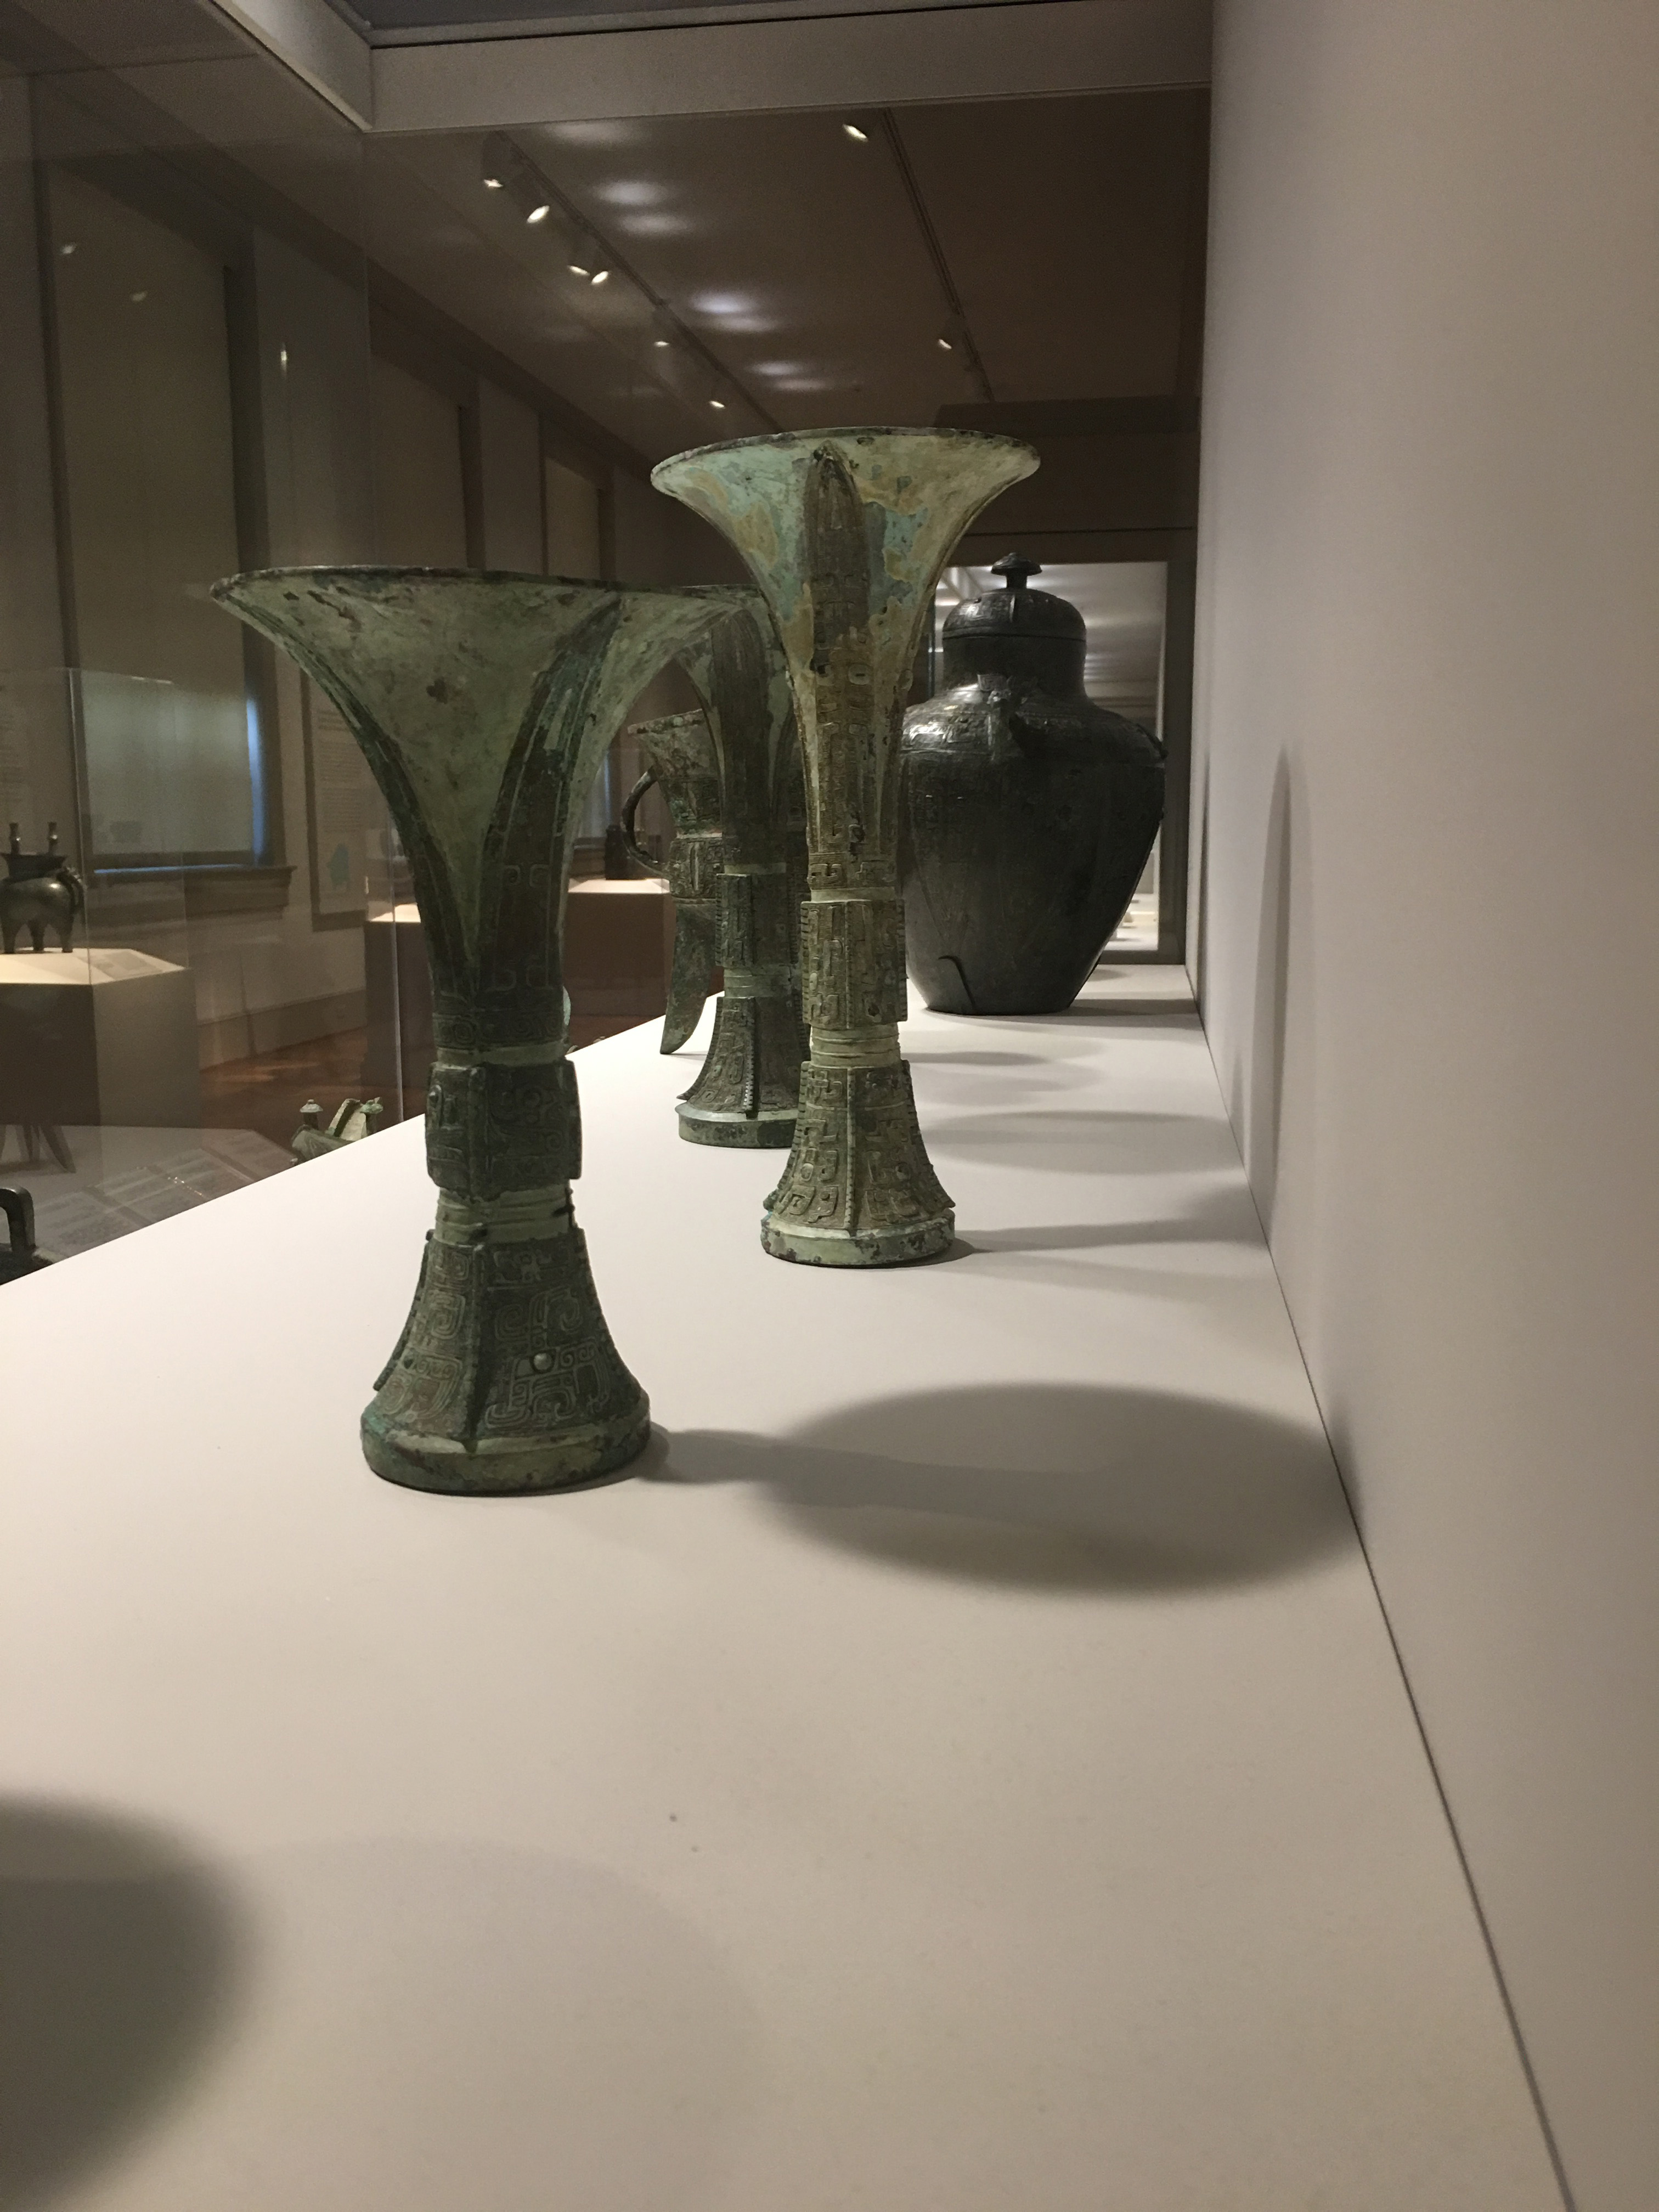 Group of Chinese Archaic Bronze Gu-Form Vases, St. Louis Art Museum, New York Auction House, Houston Auction, Dallas Auction, San Antonio Auction, Chinese Auction, 觚, 青铜, 中国艺术拍卖